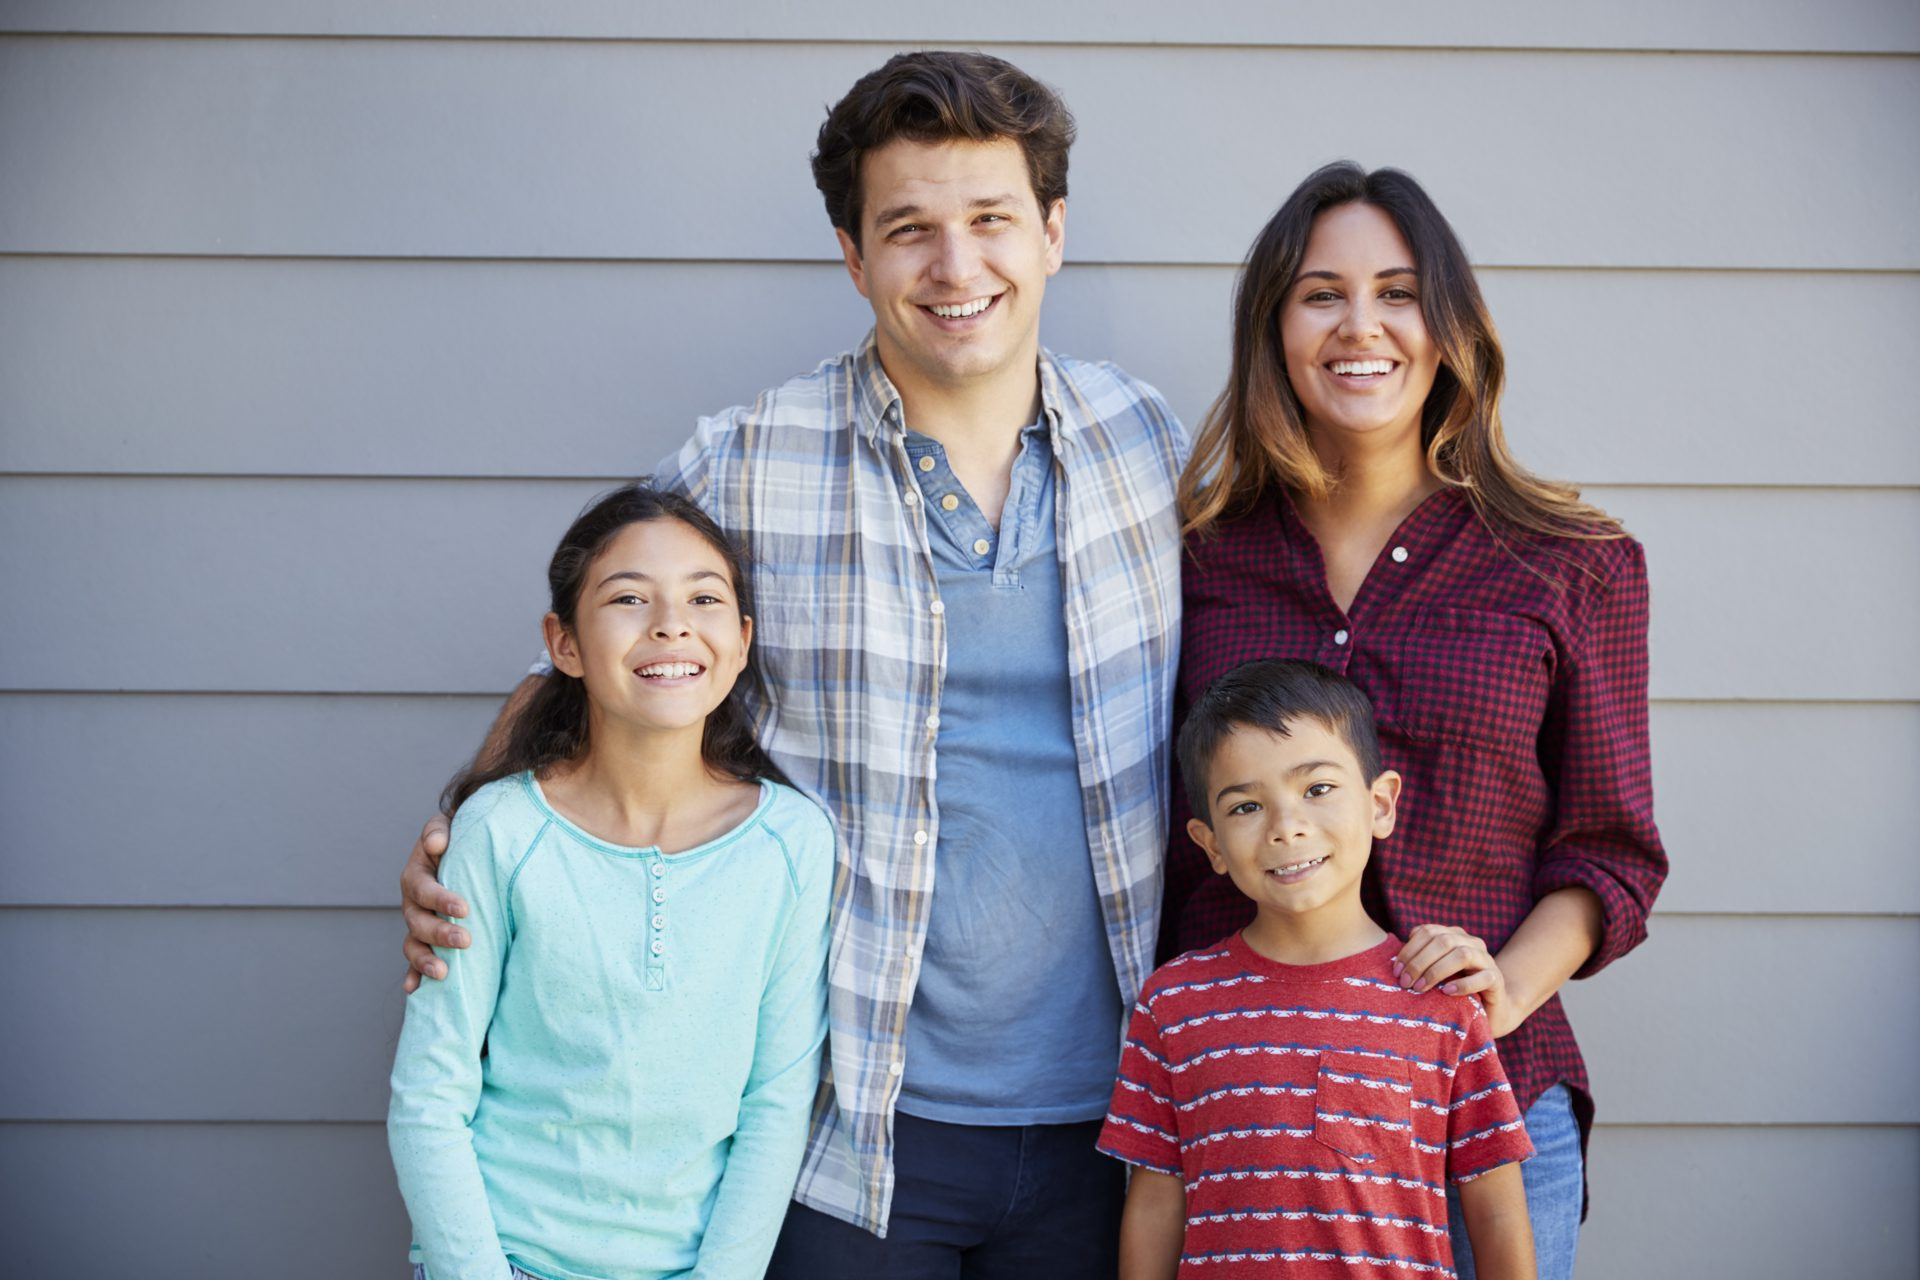 Family buying their first home